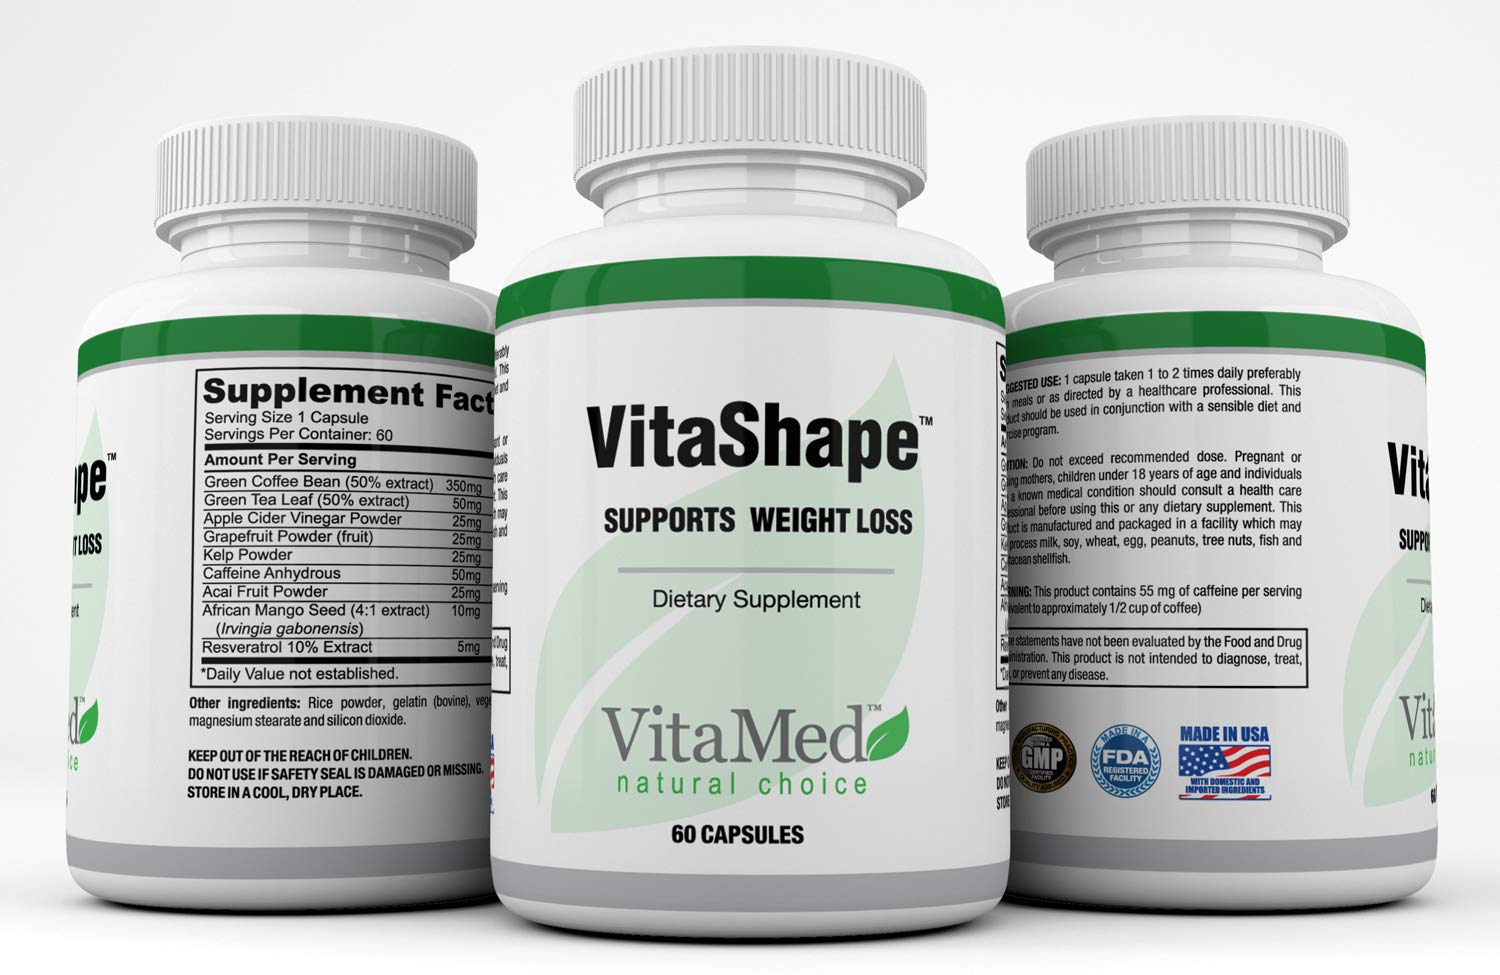 VitaMed VitaShapeTM - an Incredible Blend of Natural Ingredients for Weight Loss Support - 60 Capsules